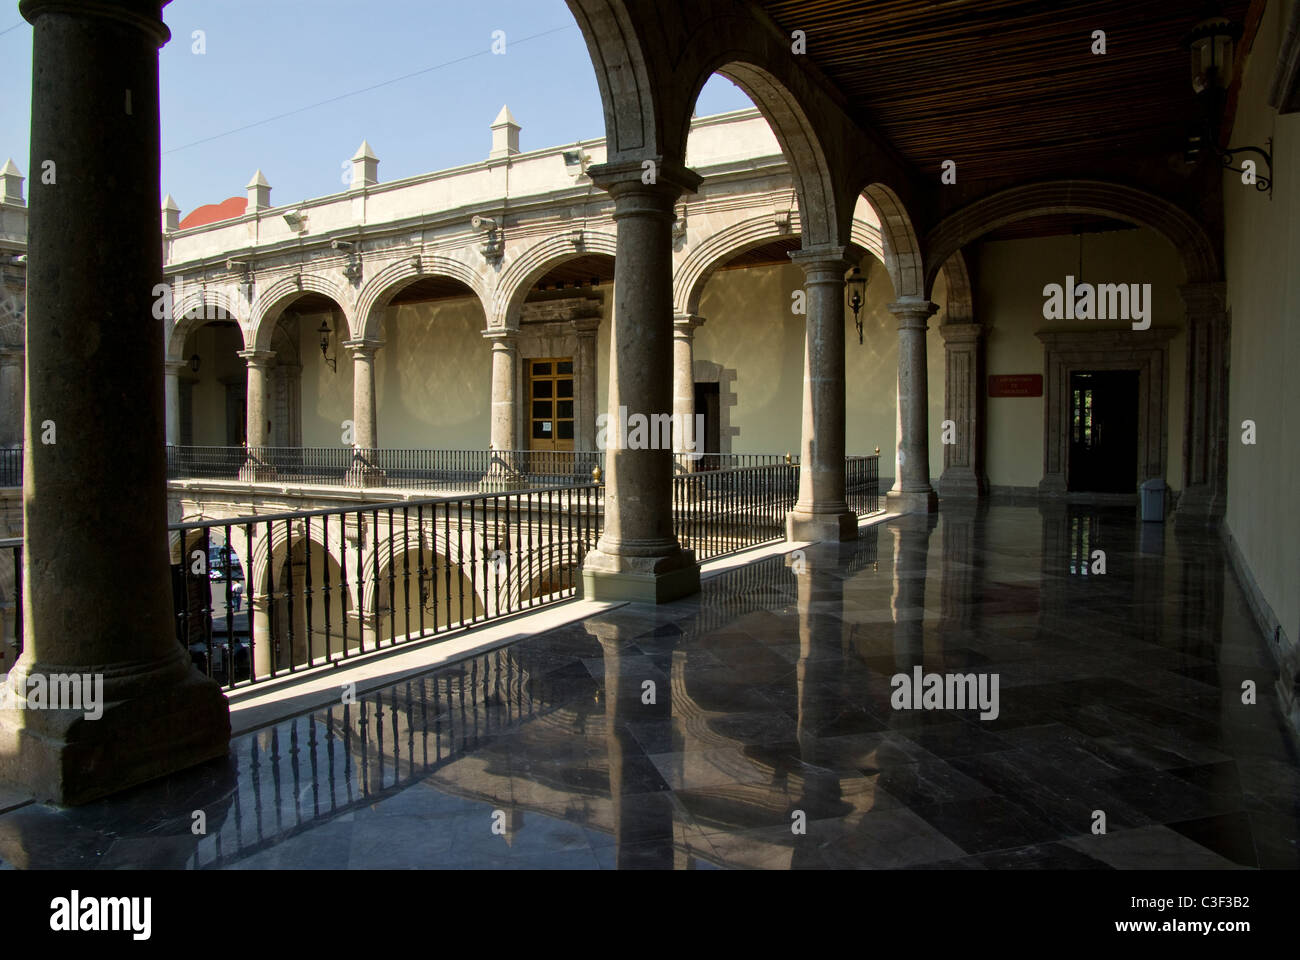 Mexico.Mexico city .Old Palace of the Medicine. - Stock Image